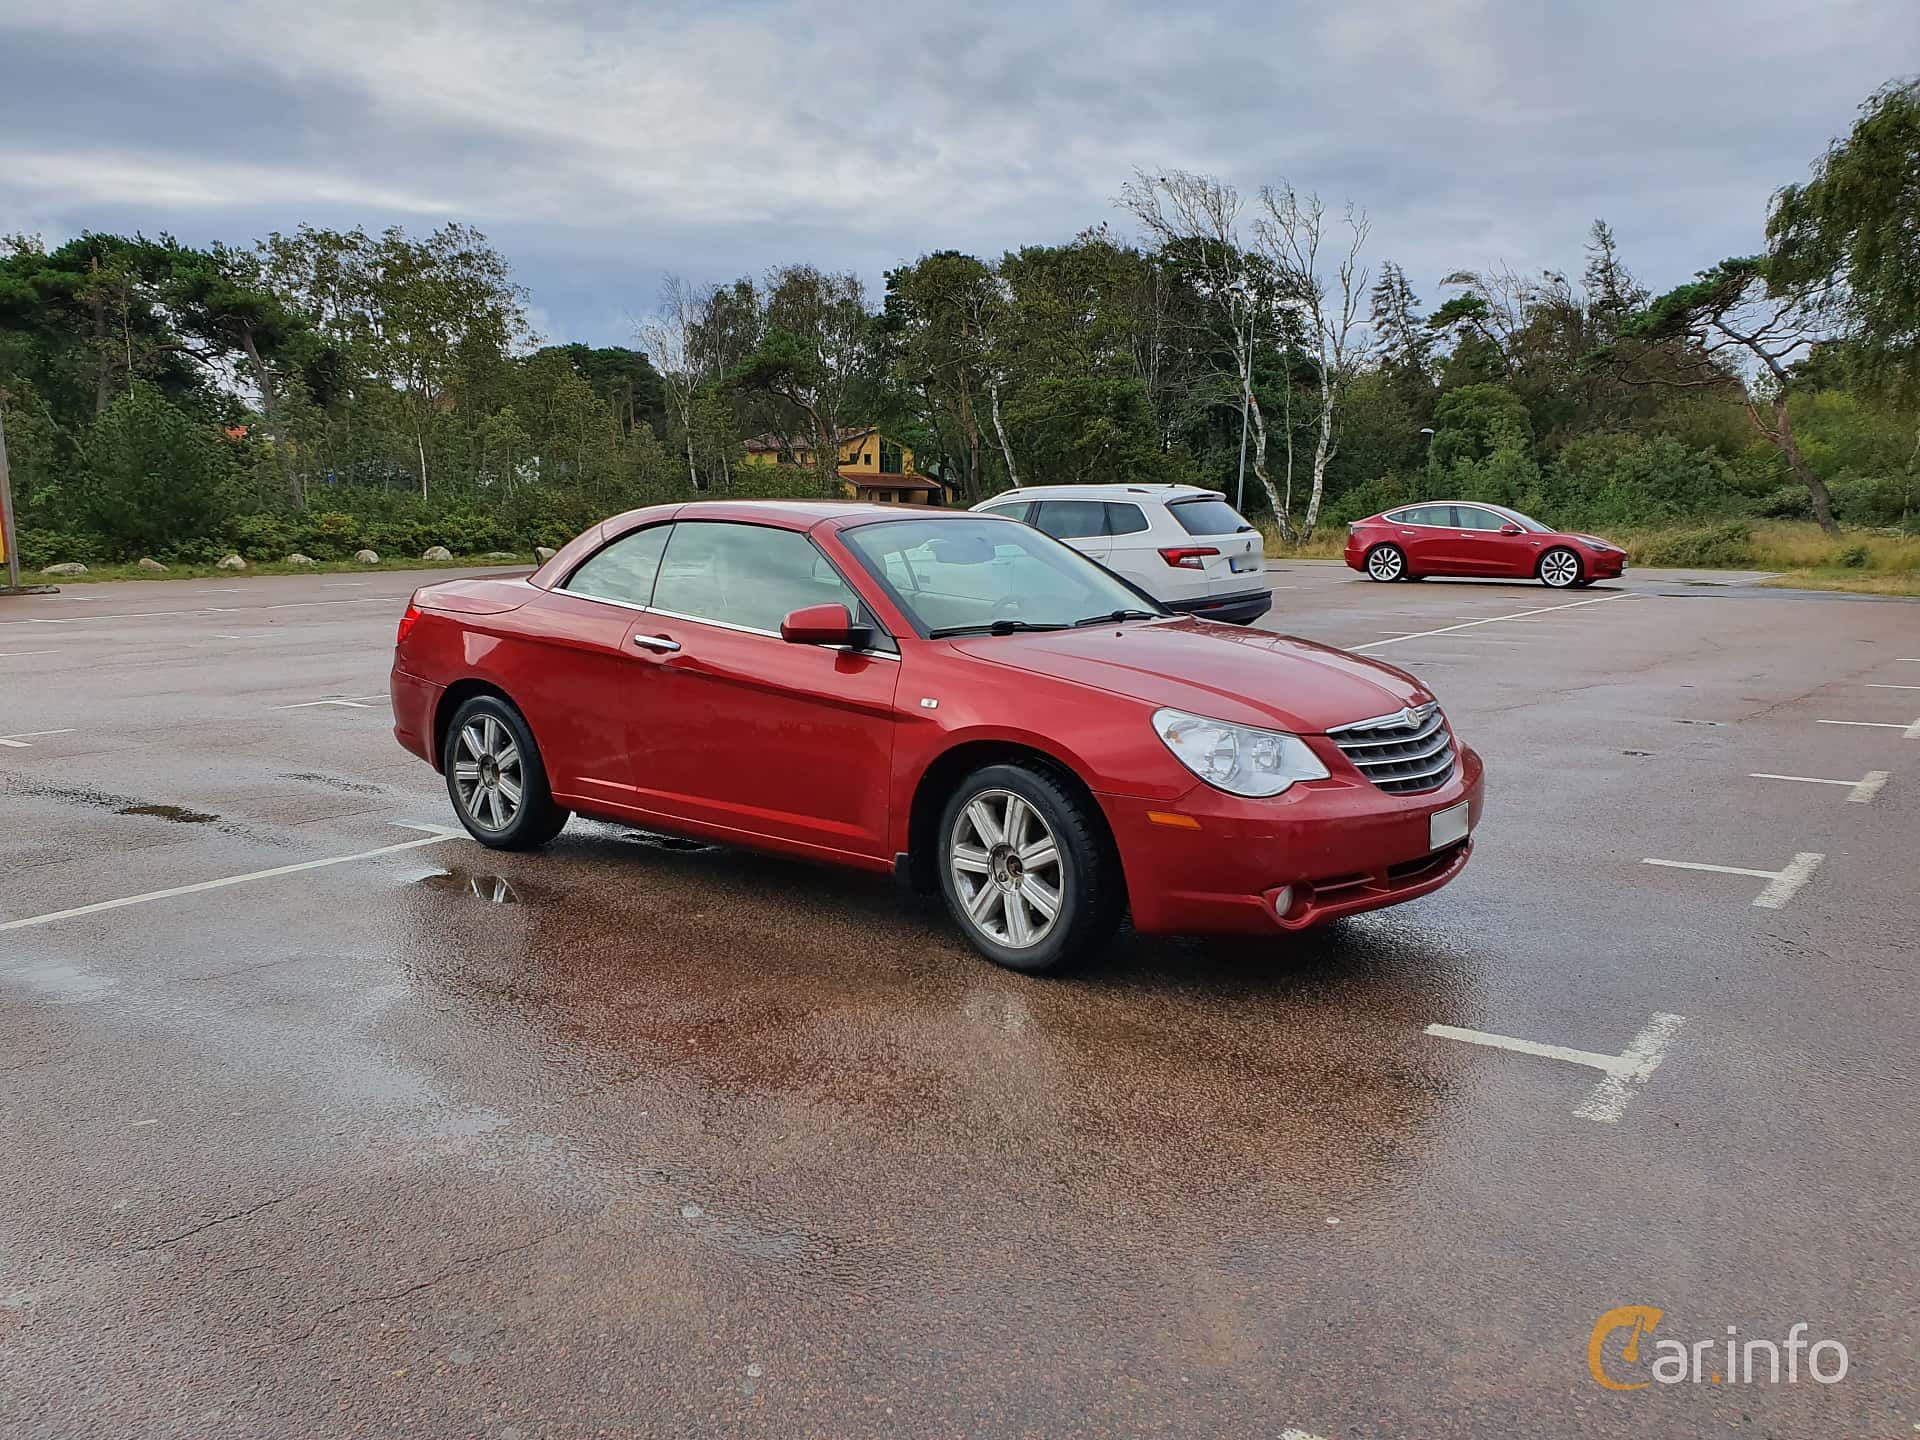 Fram/Sida av Chrysler Sebring Convertible 3.5 Automatic, 238ps, 2010